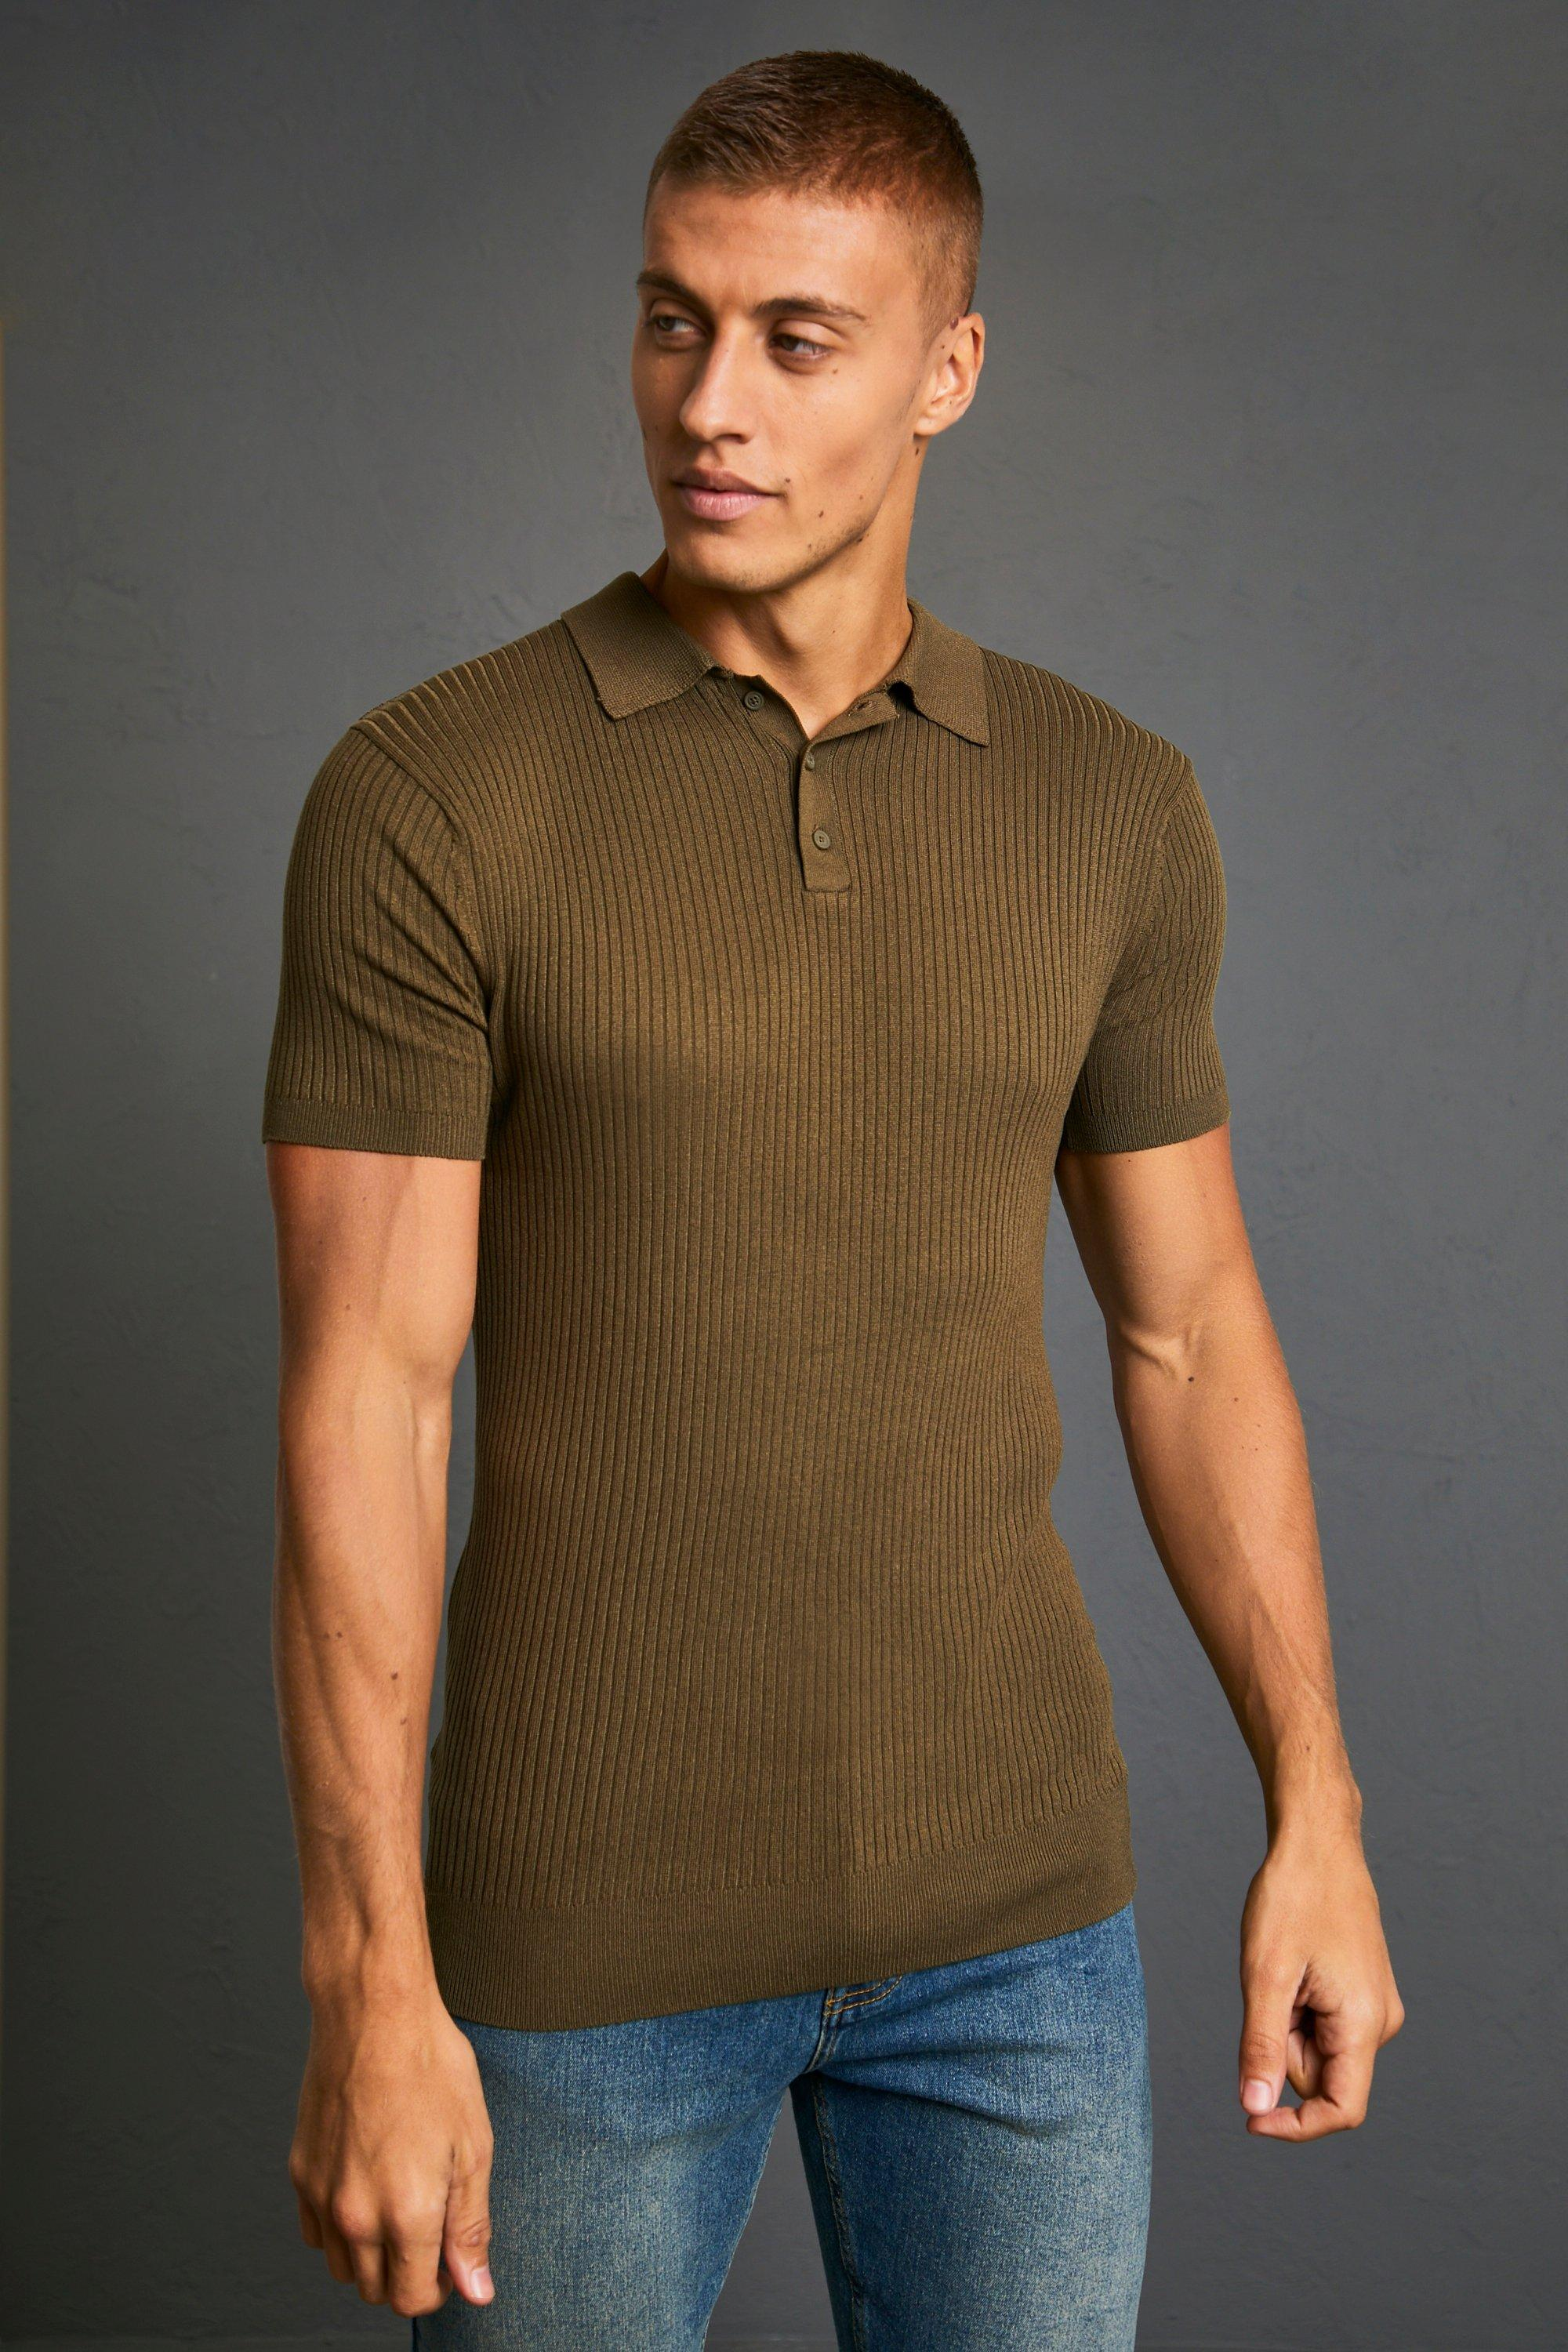 1960s Mens Shirts | 60s Mod Shirts, Hippie Shirts Mens Short Sleeve Muscle Fit Ribbed Knit Polo - Green $15.60 AT vintagedancer.com